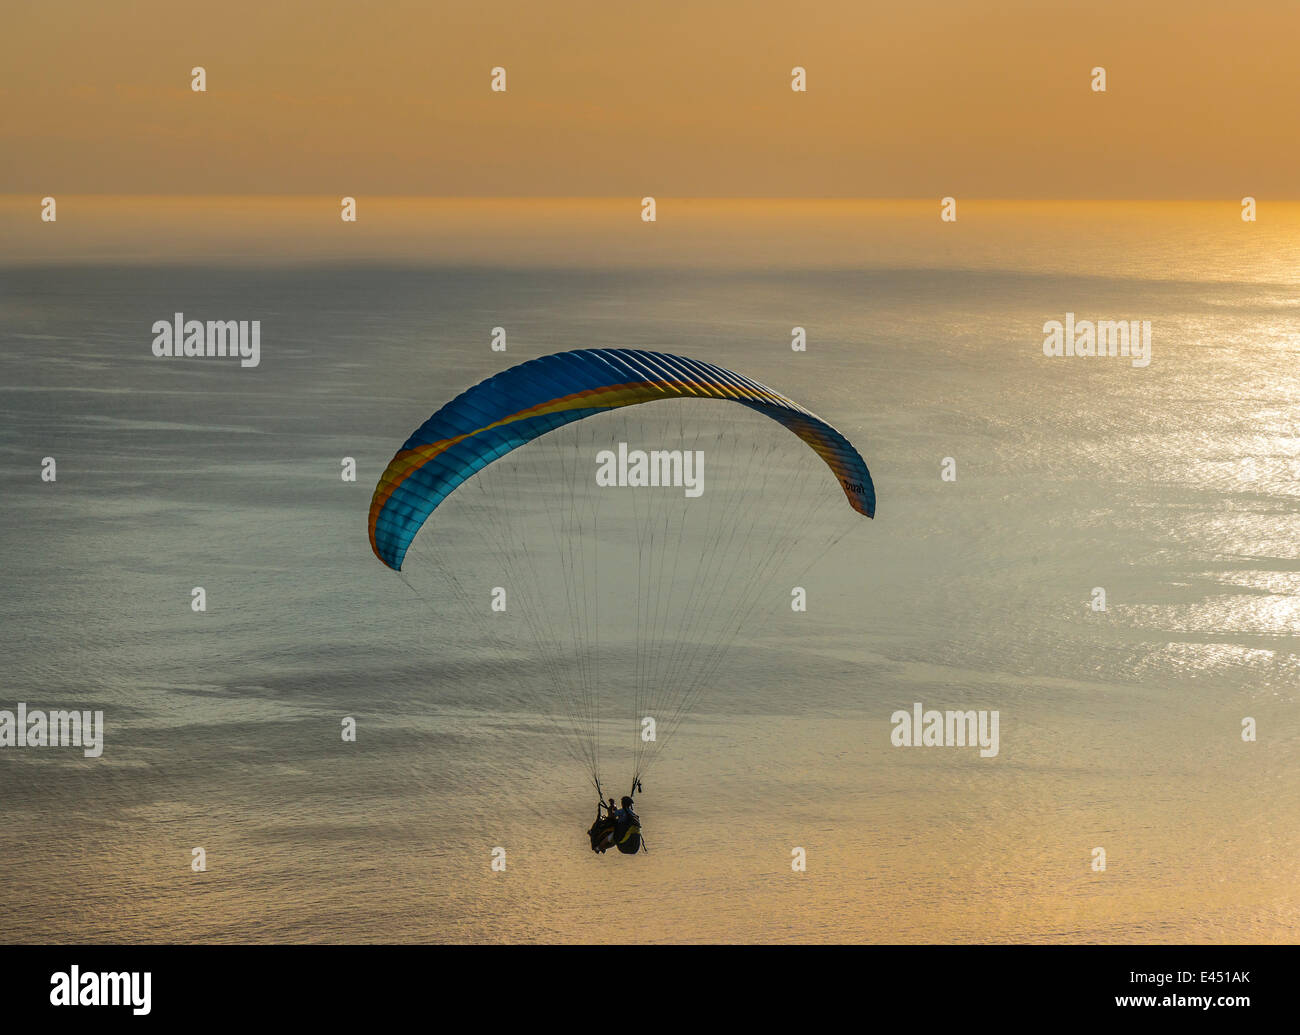 Paraglider tandem jump, paraglider flying over the sea at sunset, Cape Town, Western Cape, South Africa - Stock Image